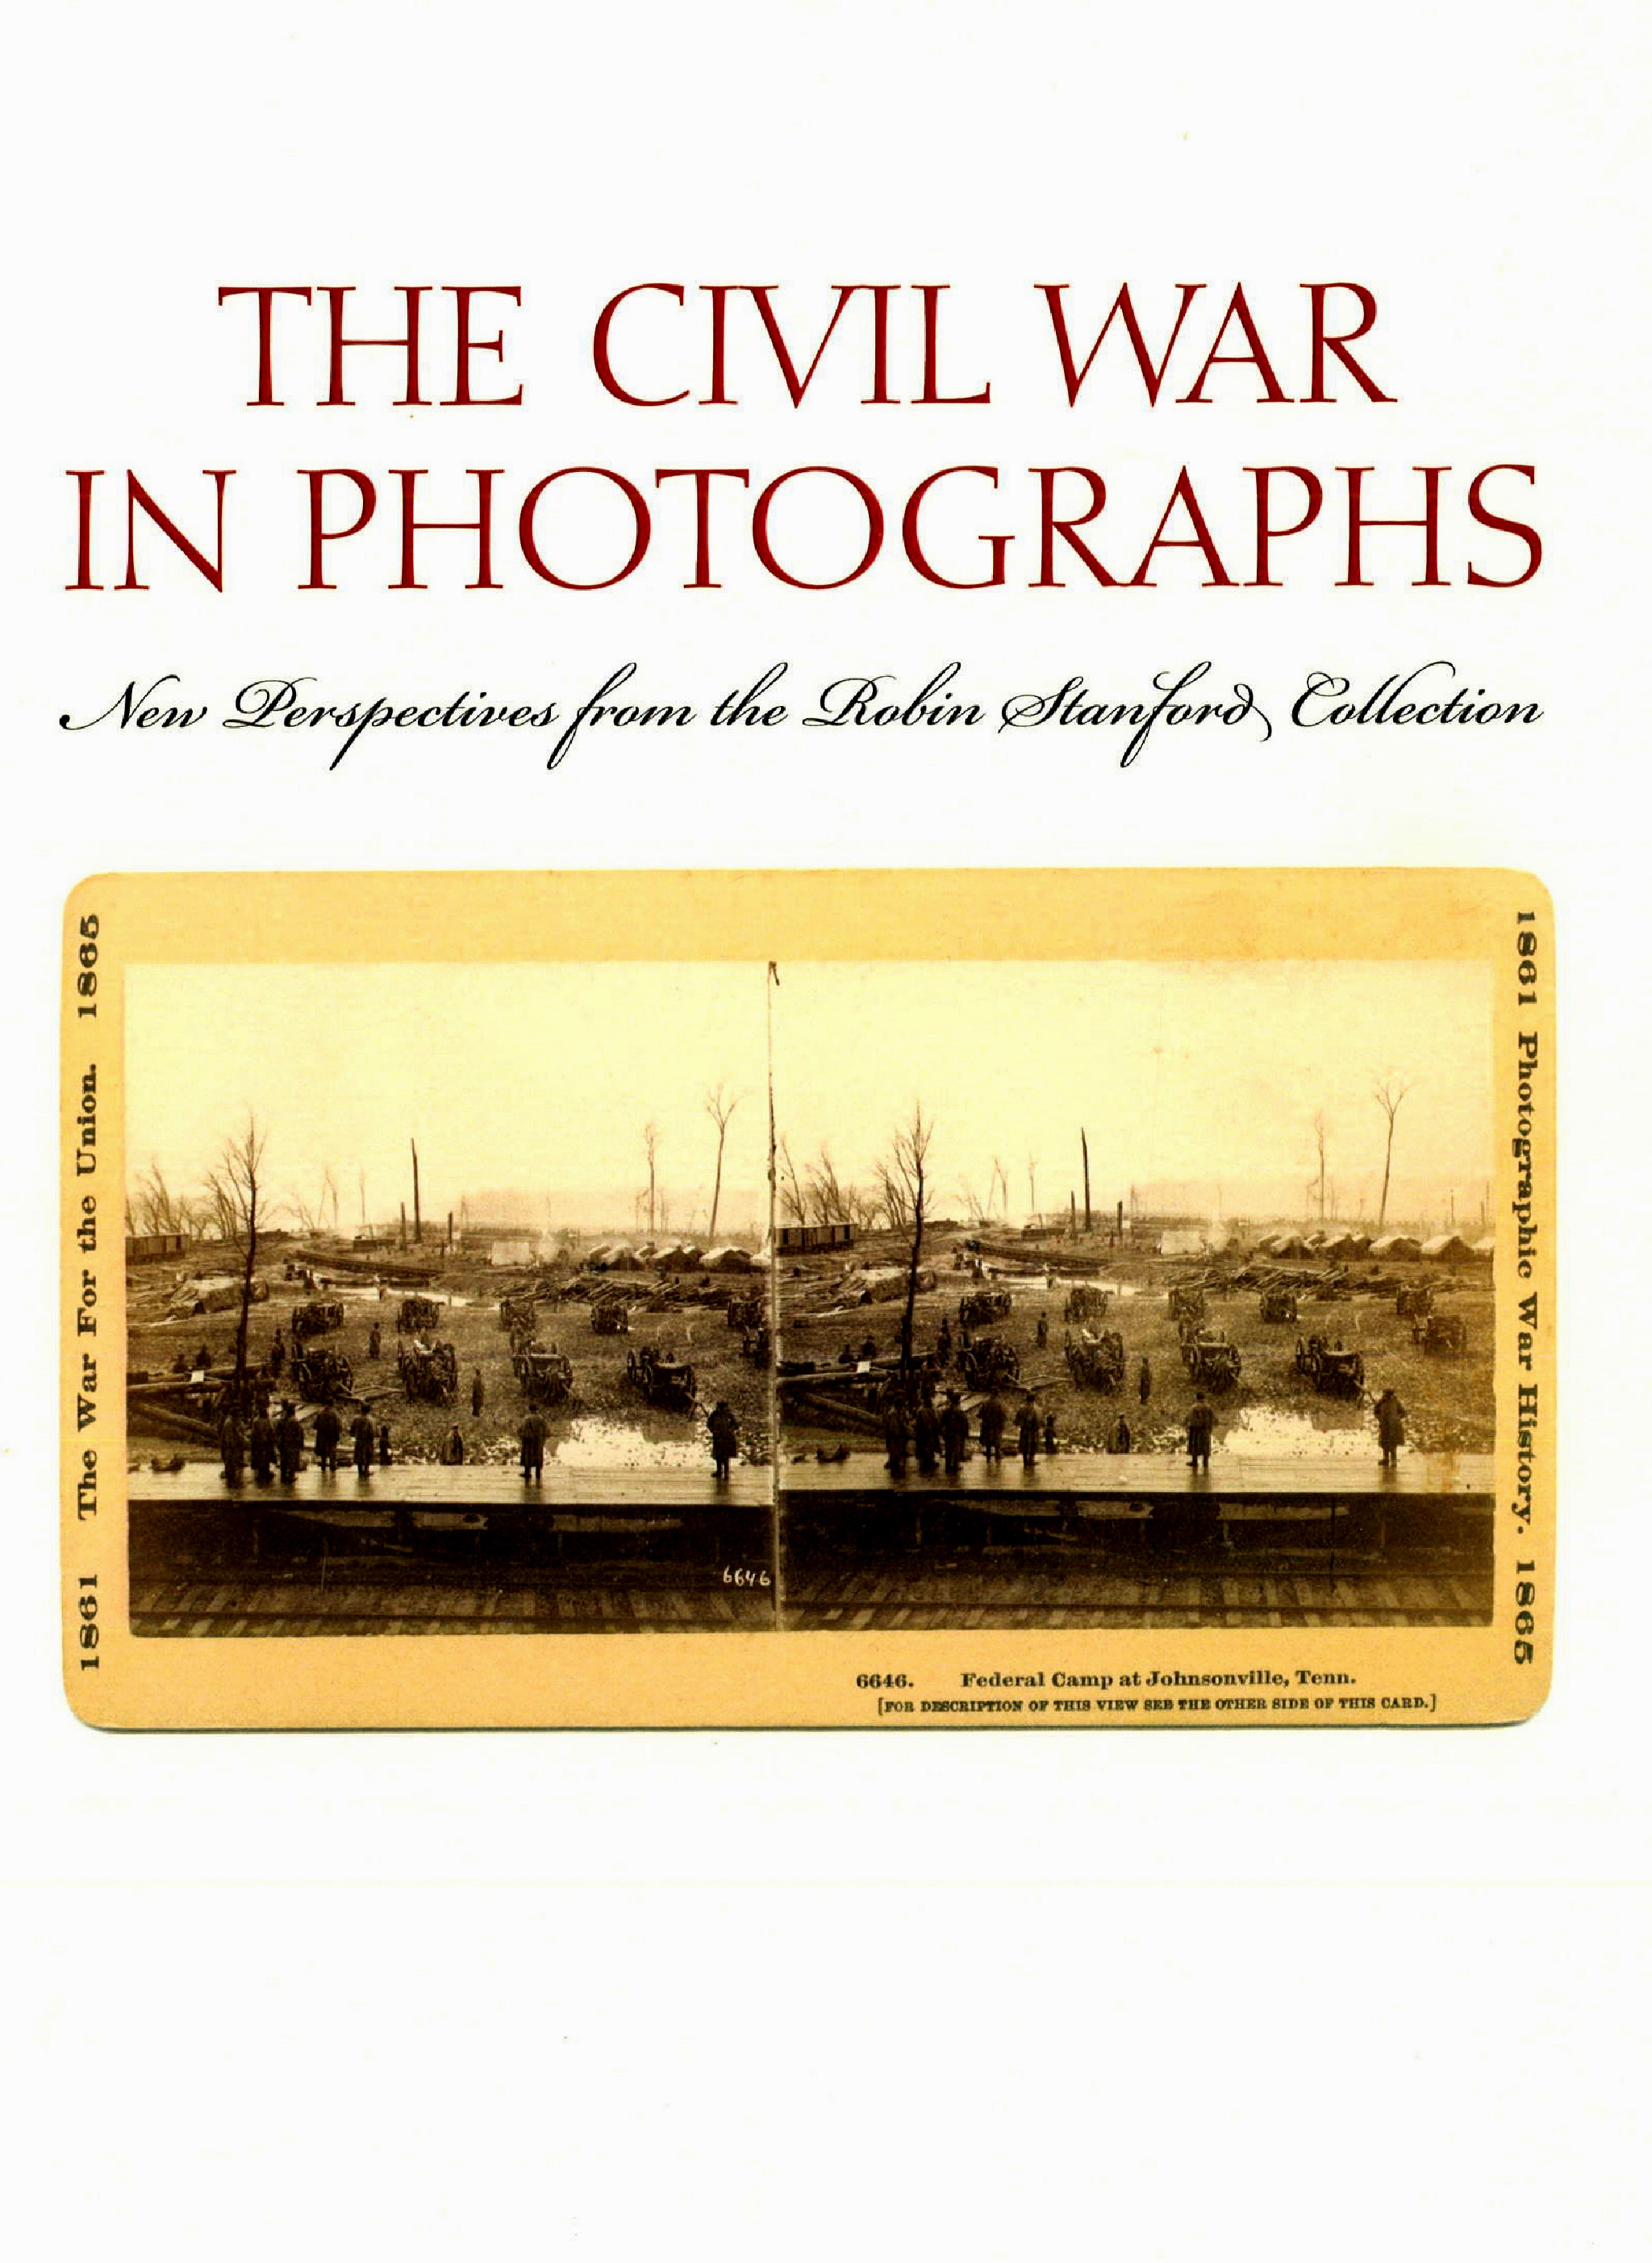 The Civil War in Photographs: New Perspectives from the Robin Stanford Collection